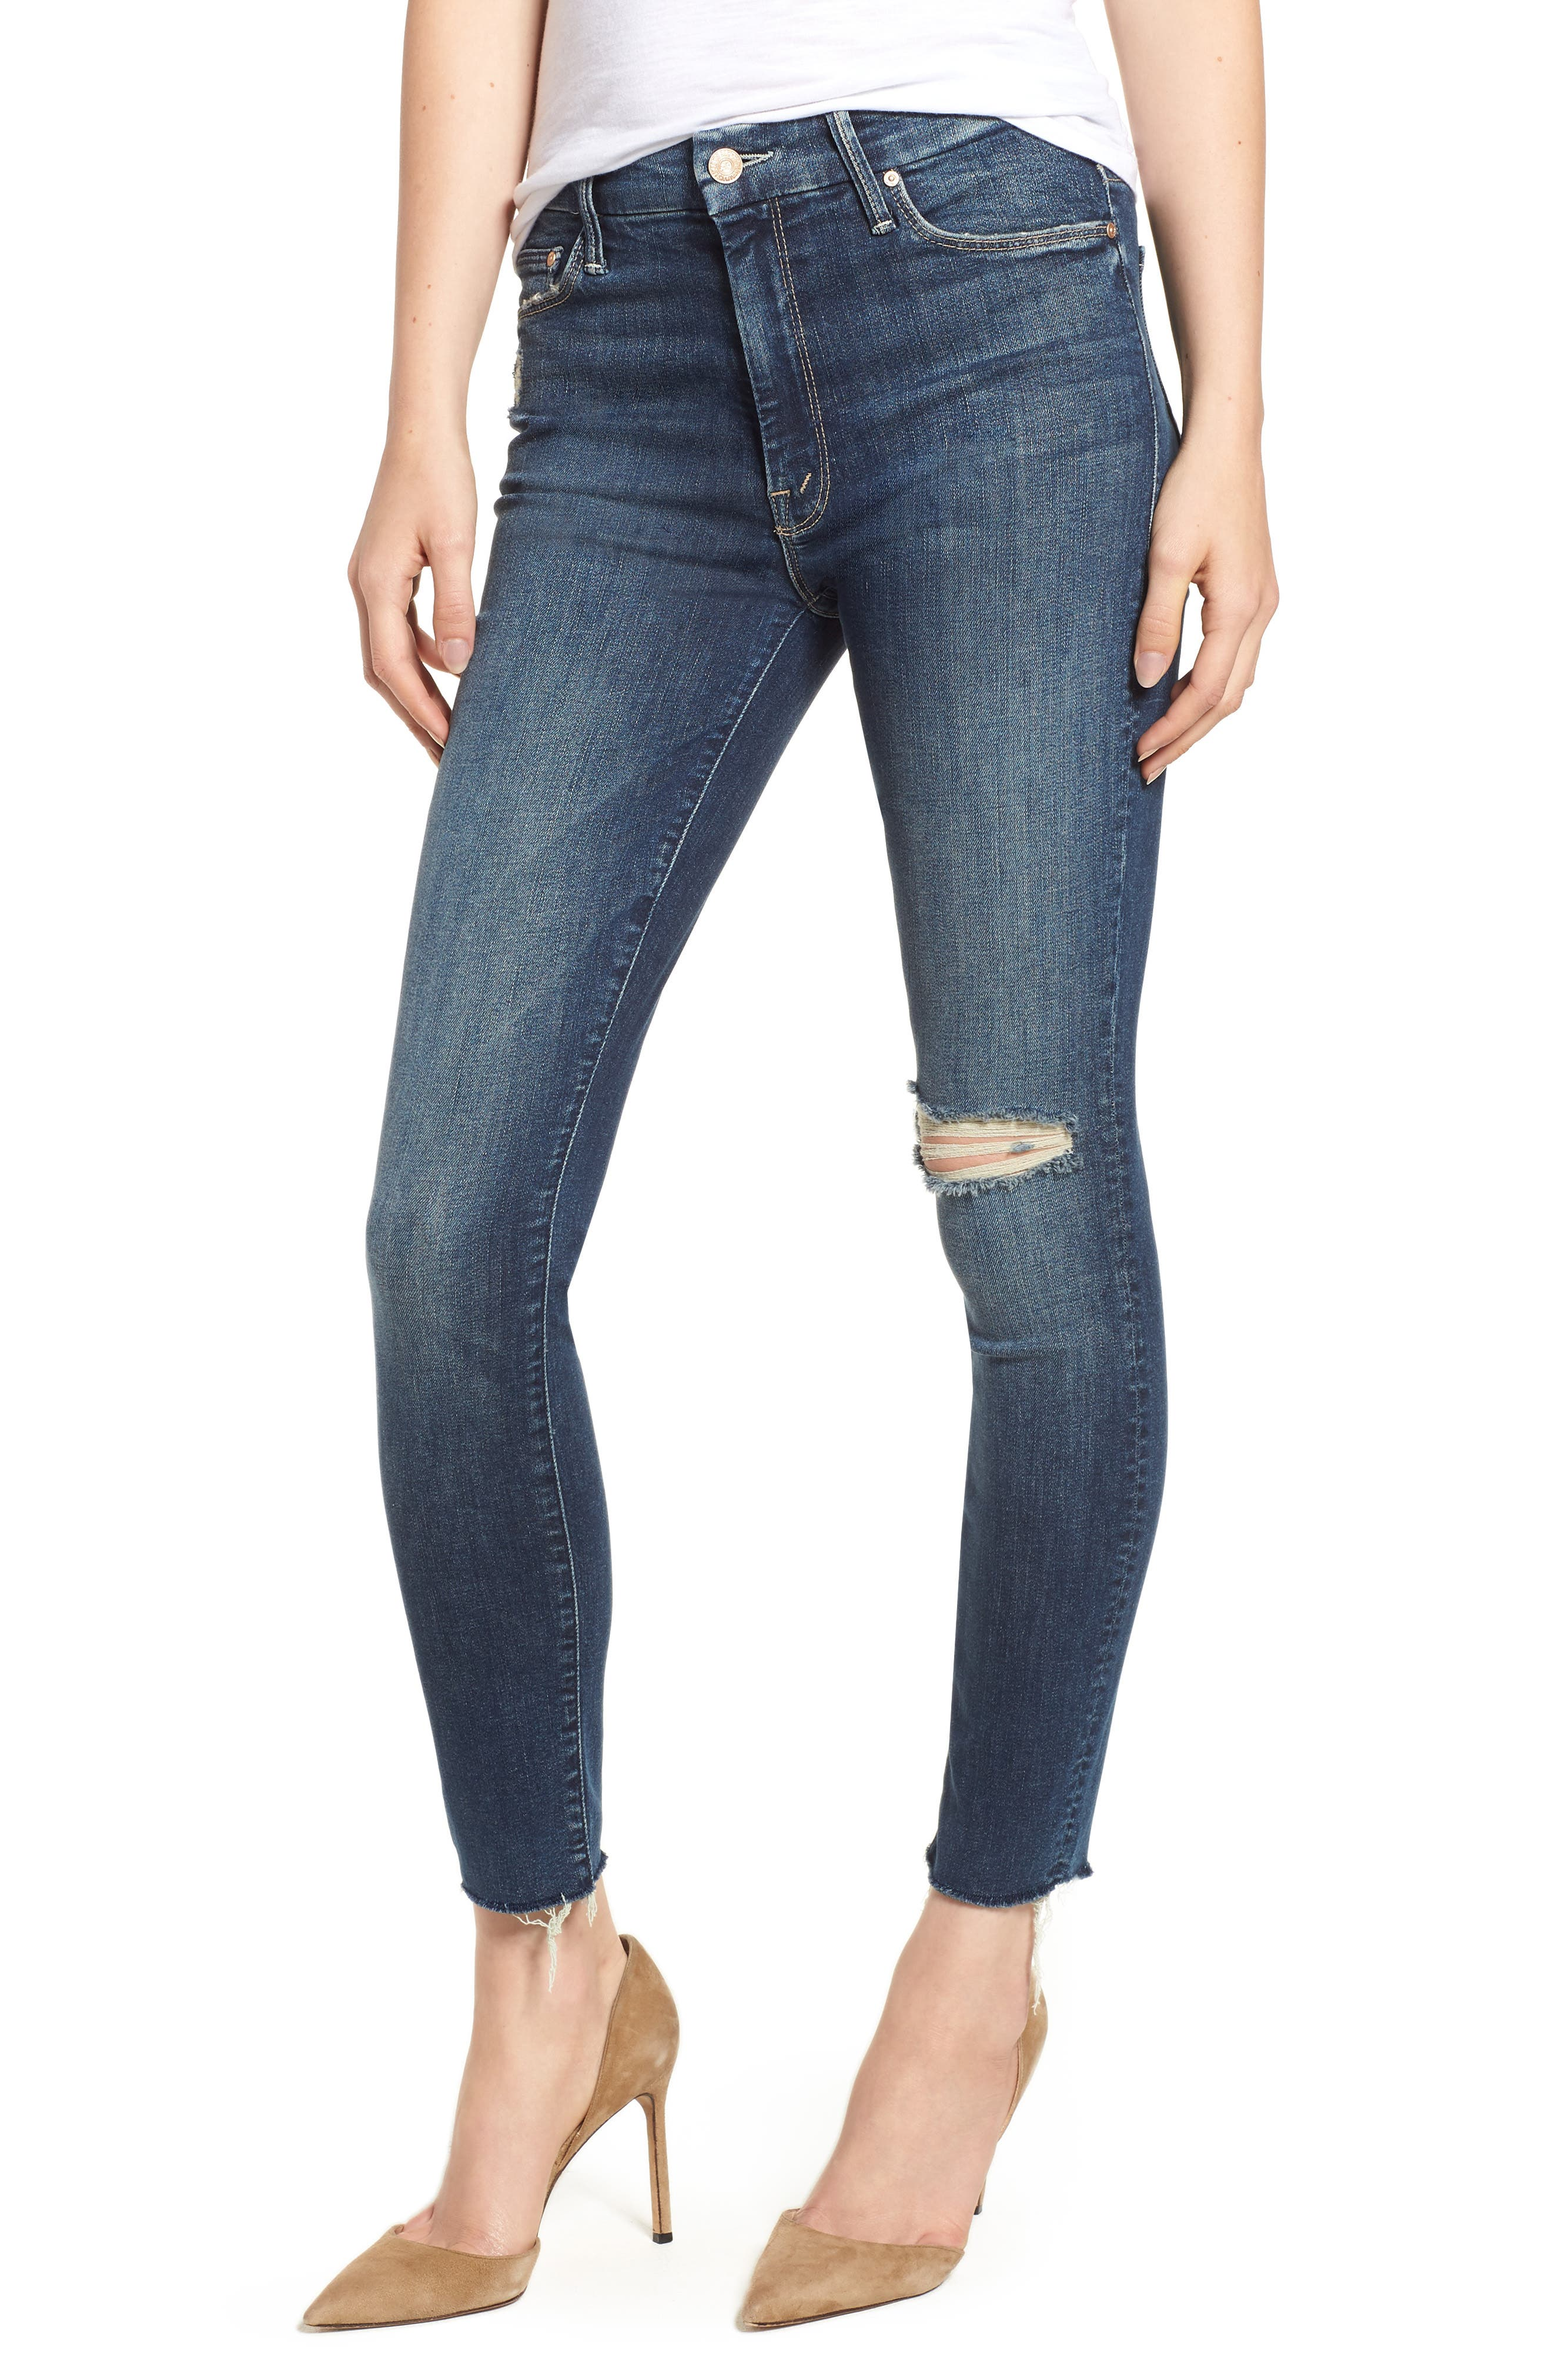 MOTHER, The Looker High Waist Frayed Ankle Skinny Jeans, Main thumbnail 1, color, CLOSE TO THE EDGE